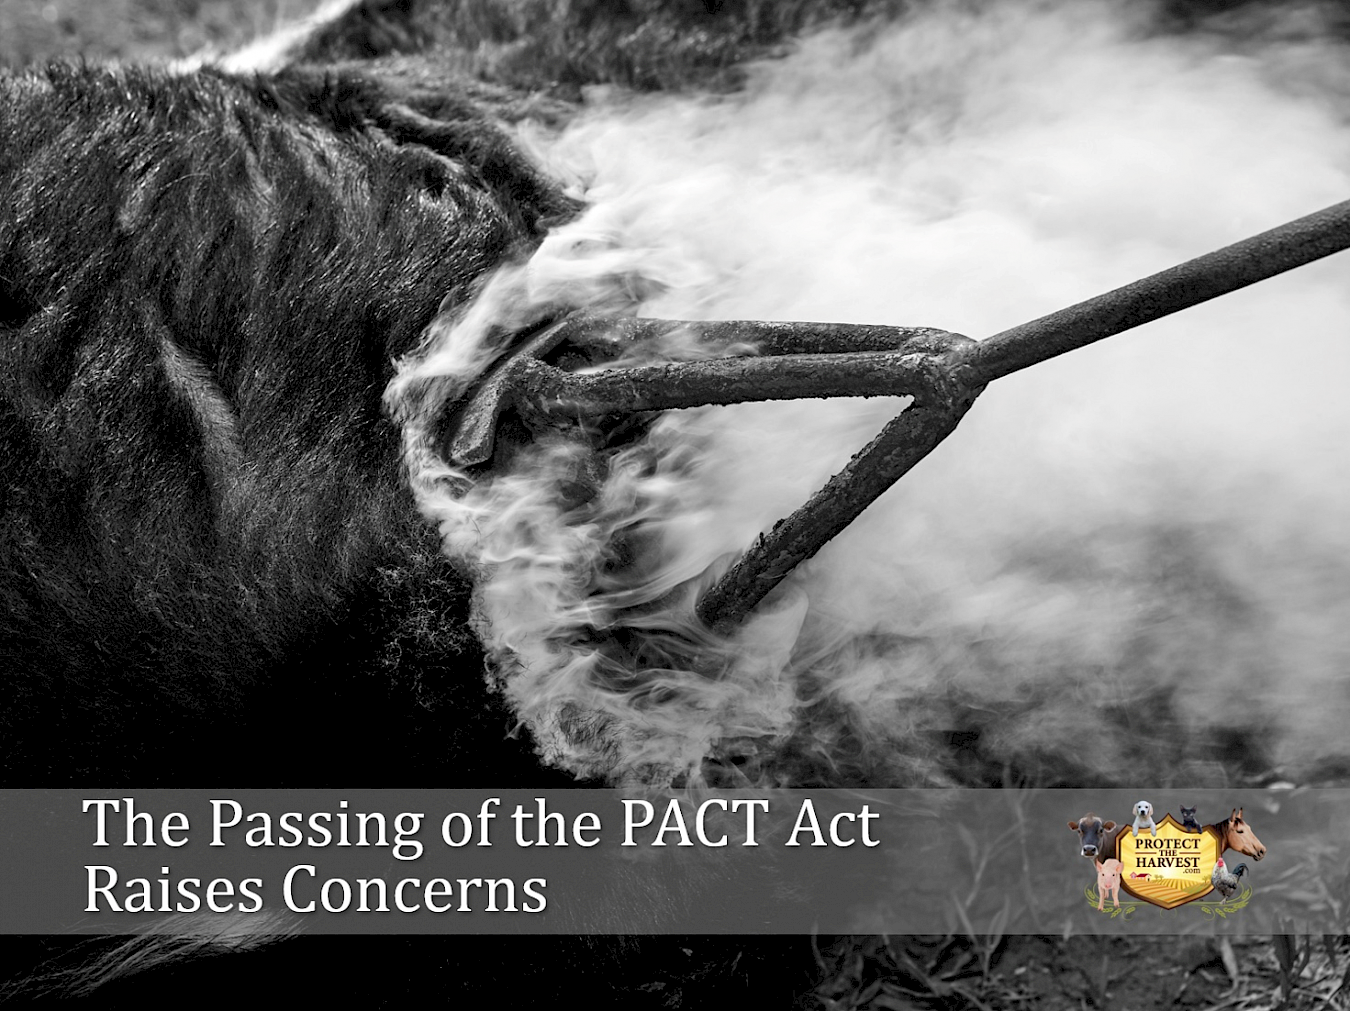 The Passing of the PACT Act Raises Concerns